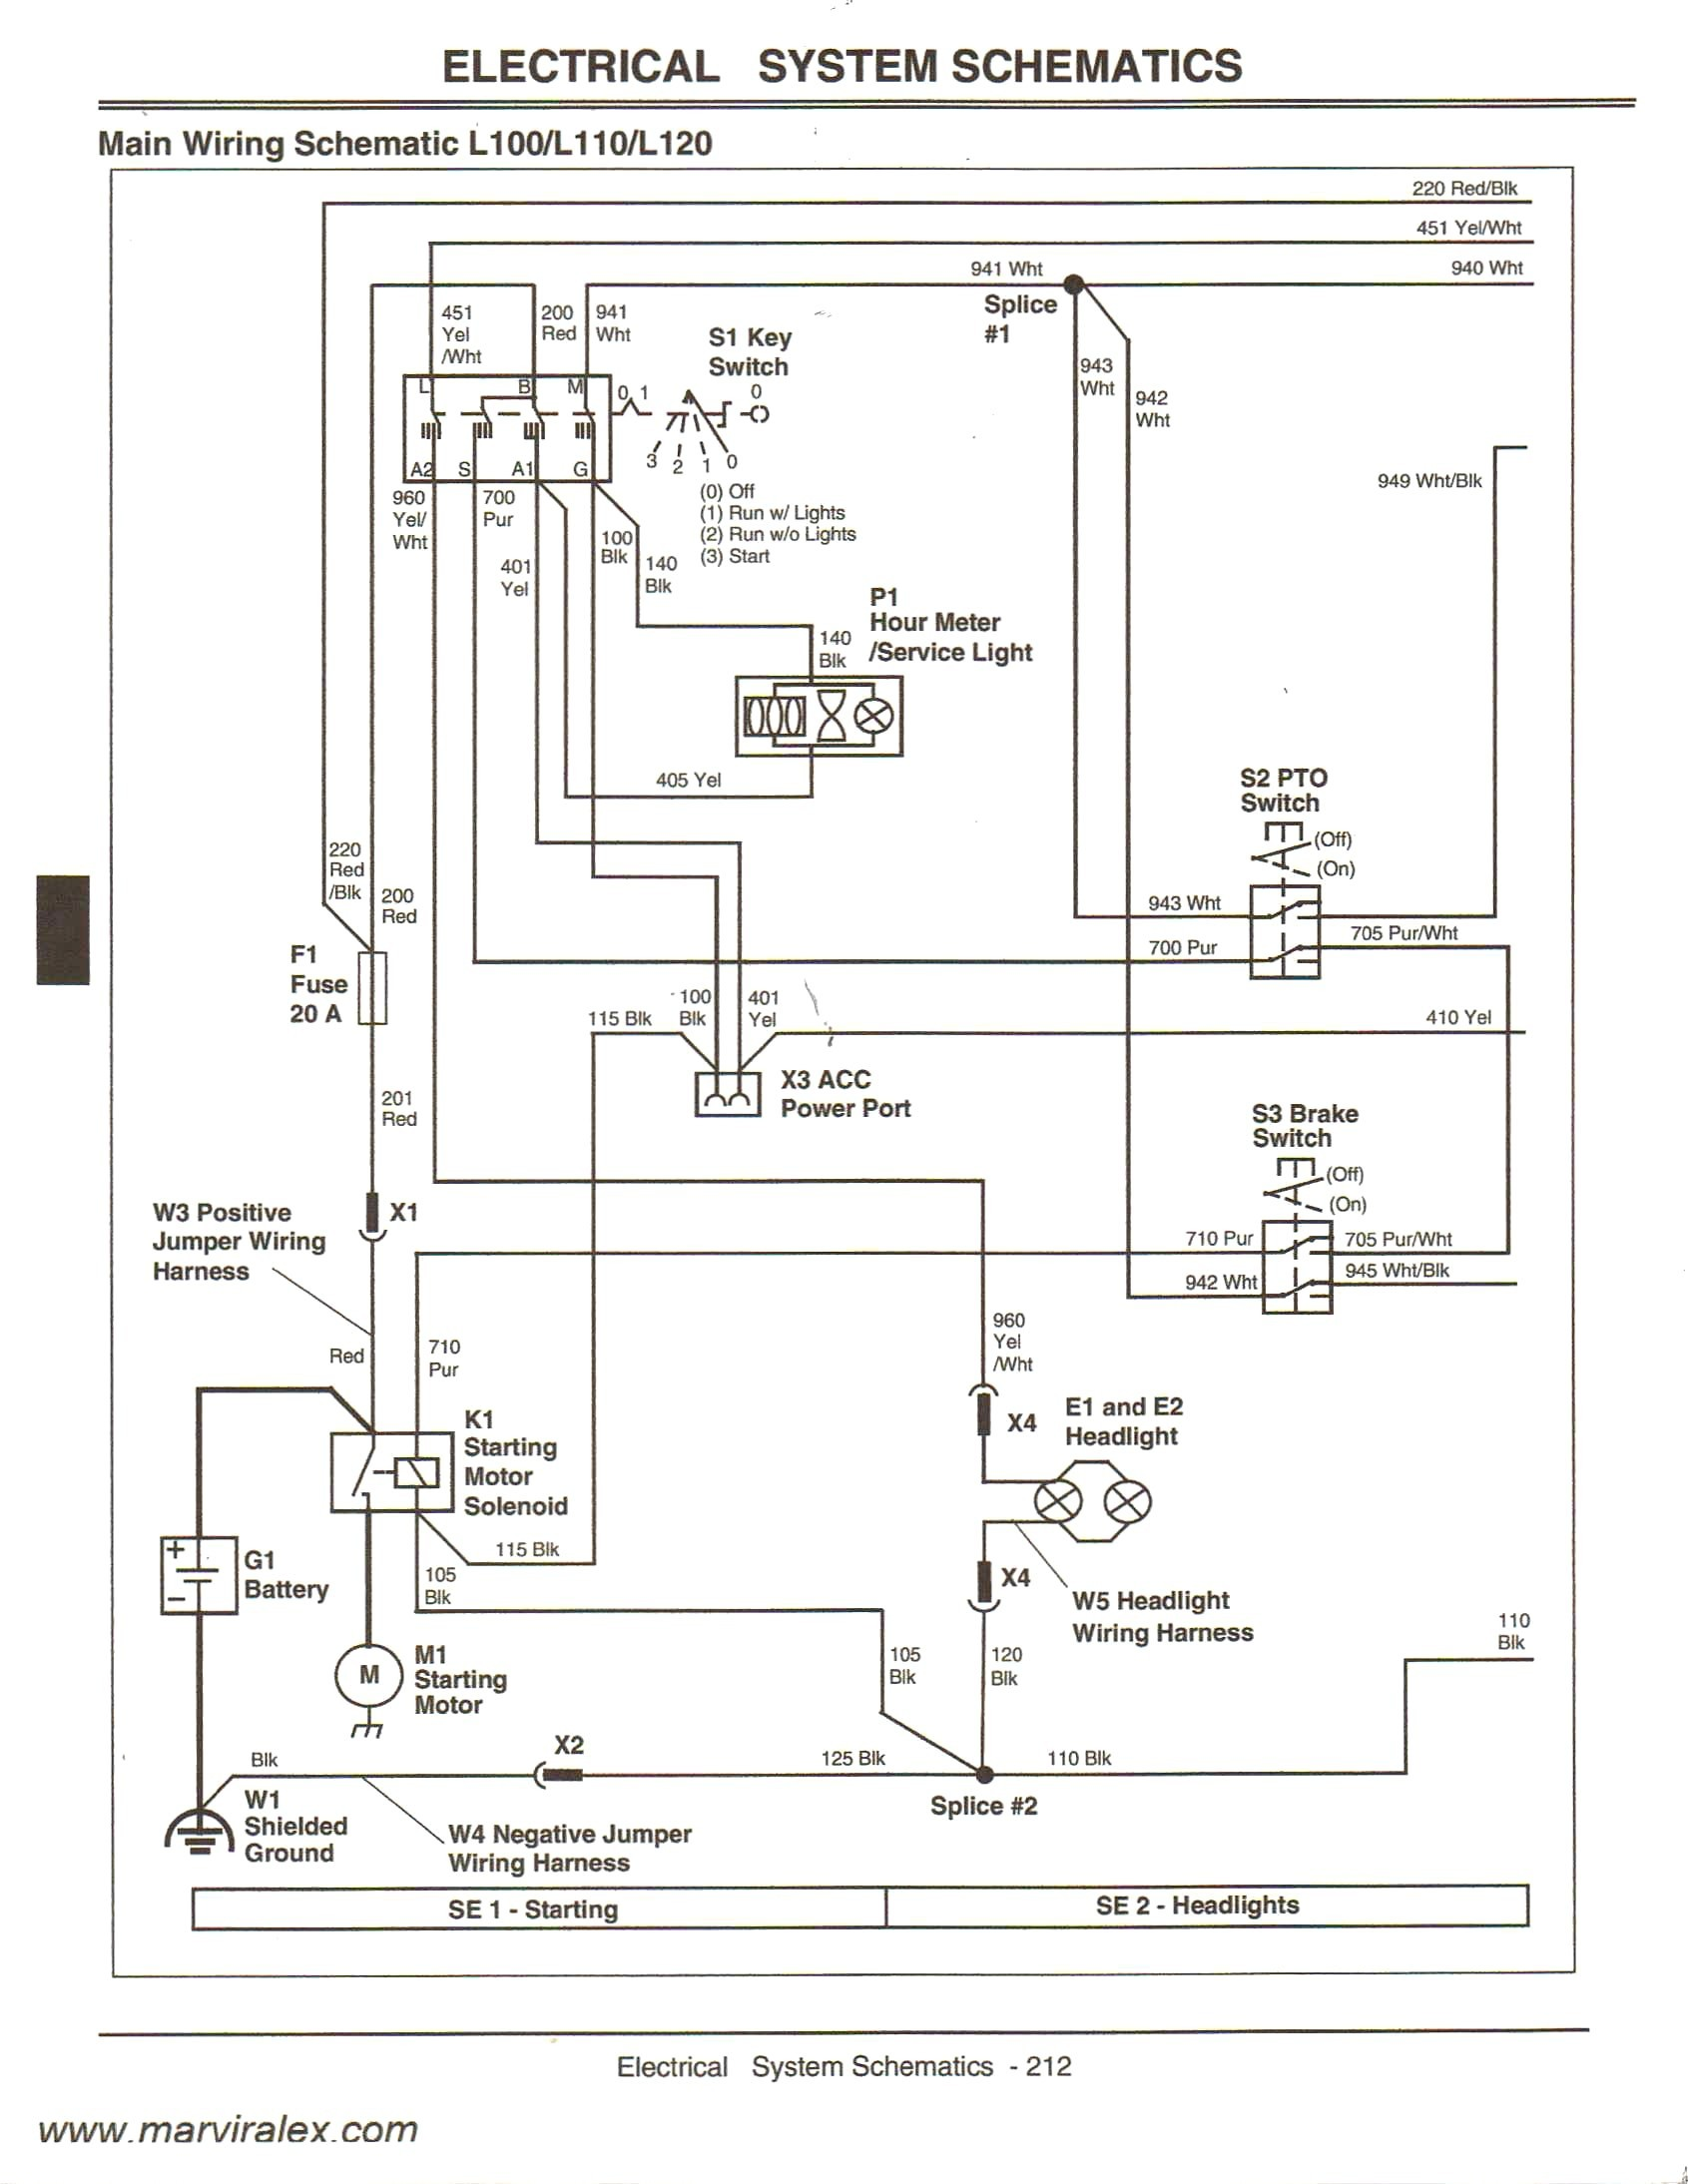 John Deere Model B Engine Diagram Data Wiring Diagrams \u2022 John Deere  3020 Carburetor Diagram John Deere Carburetor Diagram